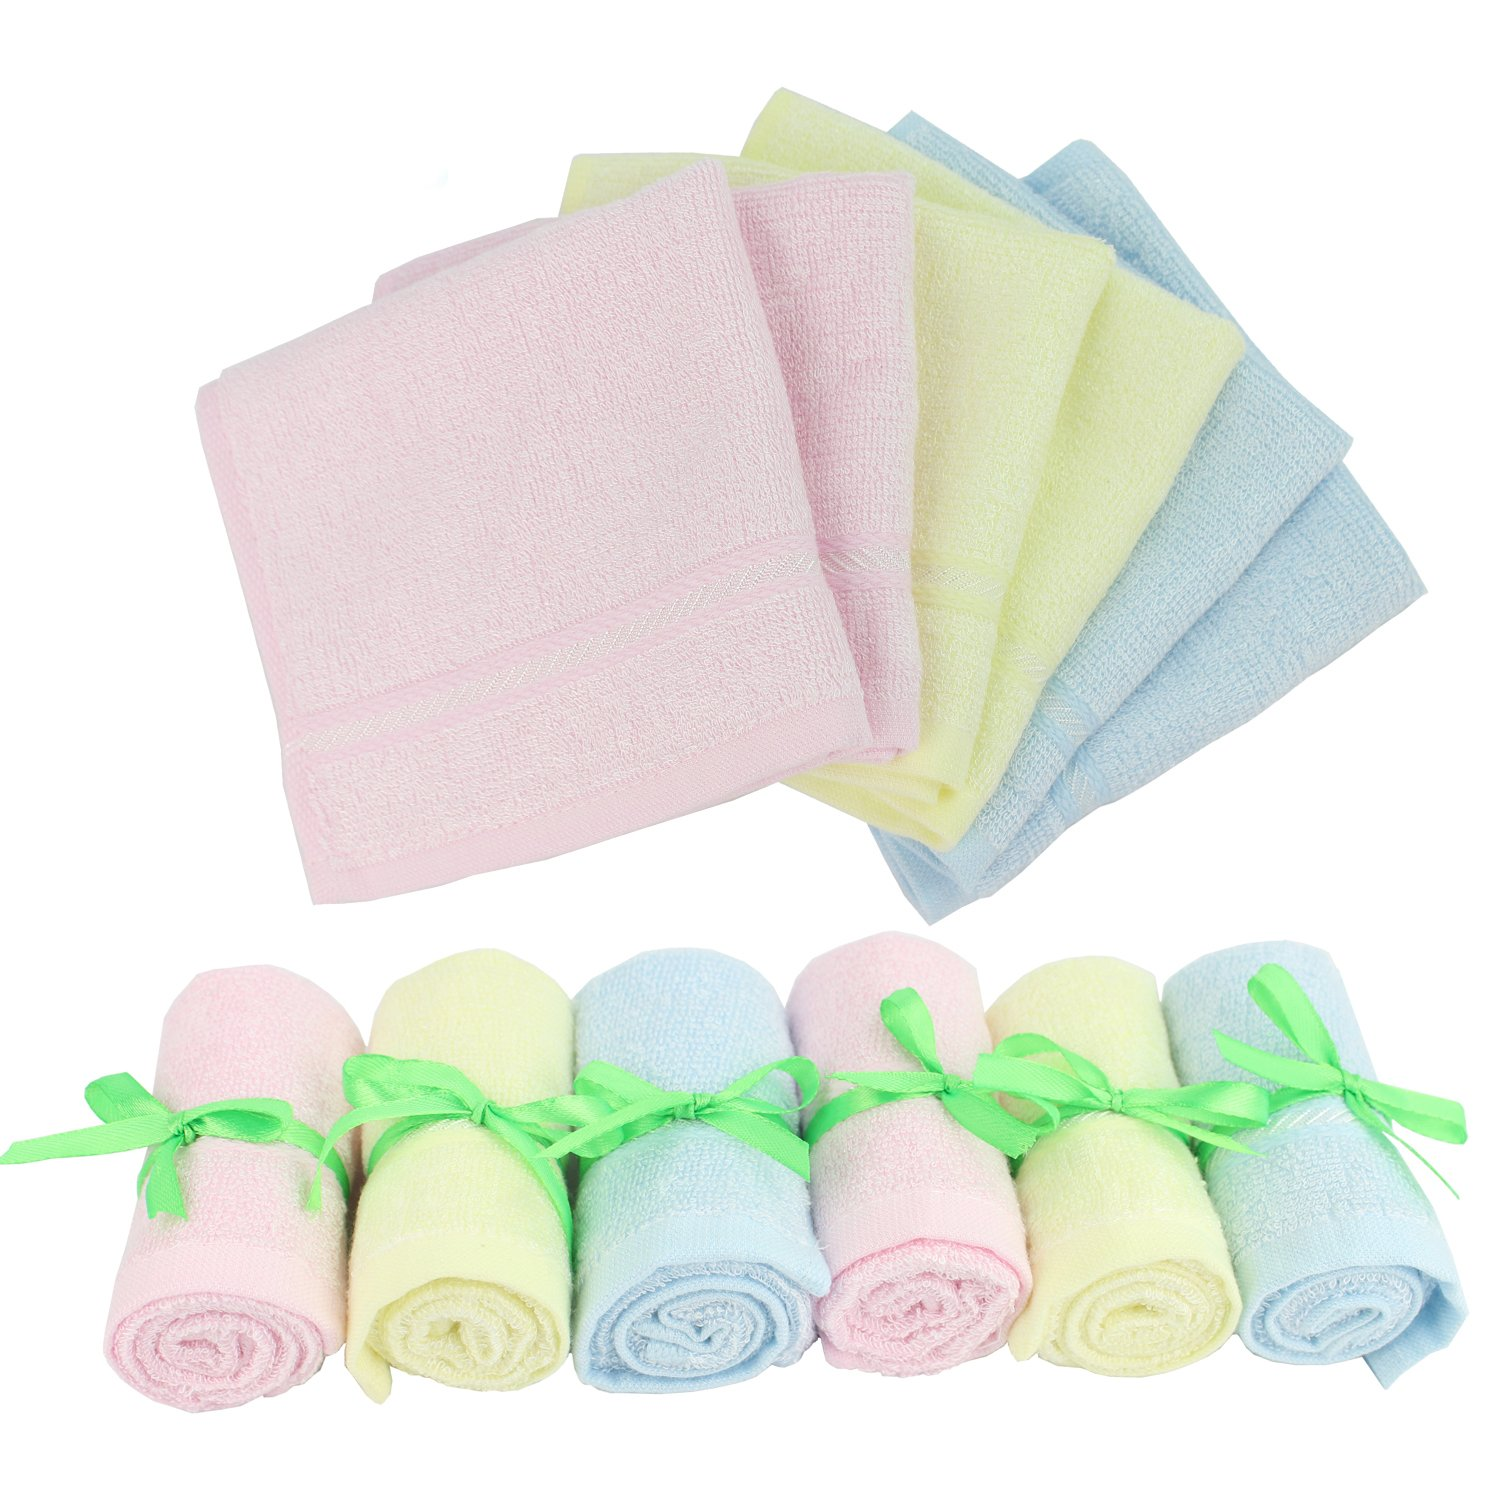 Baby Washcloths Wipes Ultra Soft - 100% Natural Organic Bamboo Face Towel - Premium Extra Soft & Absorbent Baby Wash Cloth - 6 Pack Reusable Wipes for Newborn Boy & Girl by Diggold